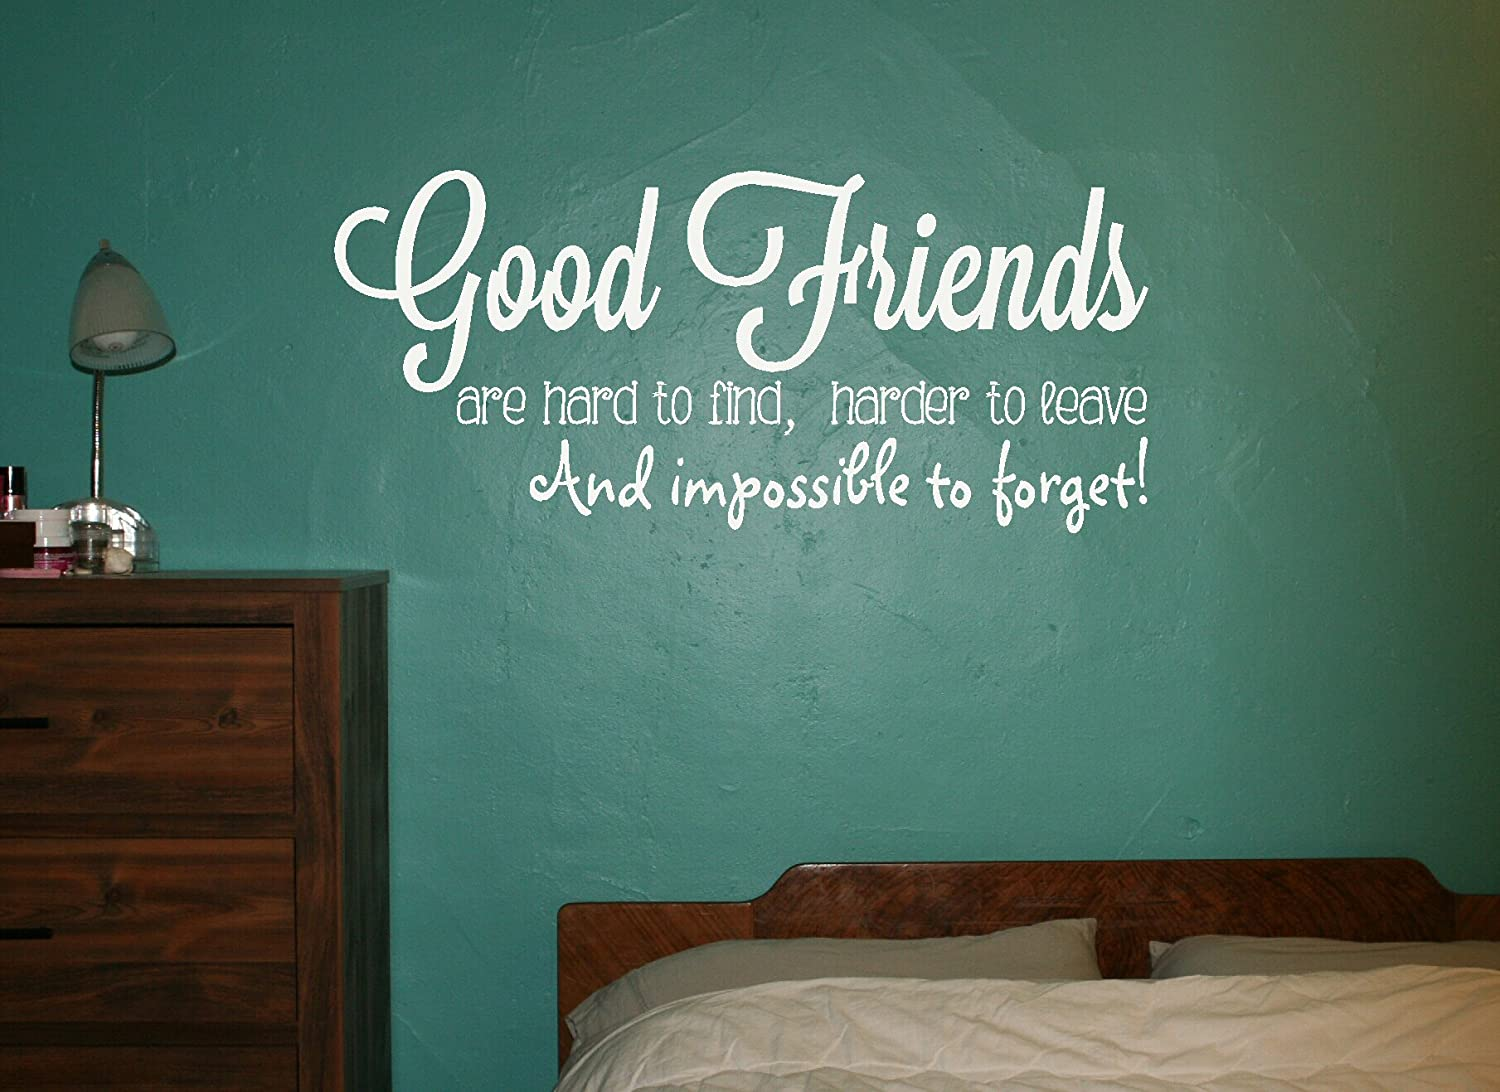 Wall Decor Plus More WDPM3122 Good Friends Impossible to Forget Wall Decal Sticker 36x16-Inch White